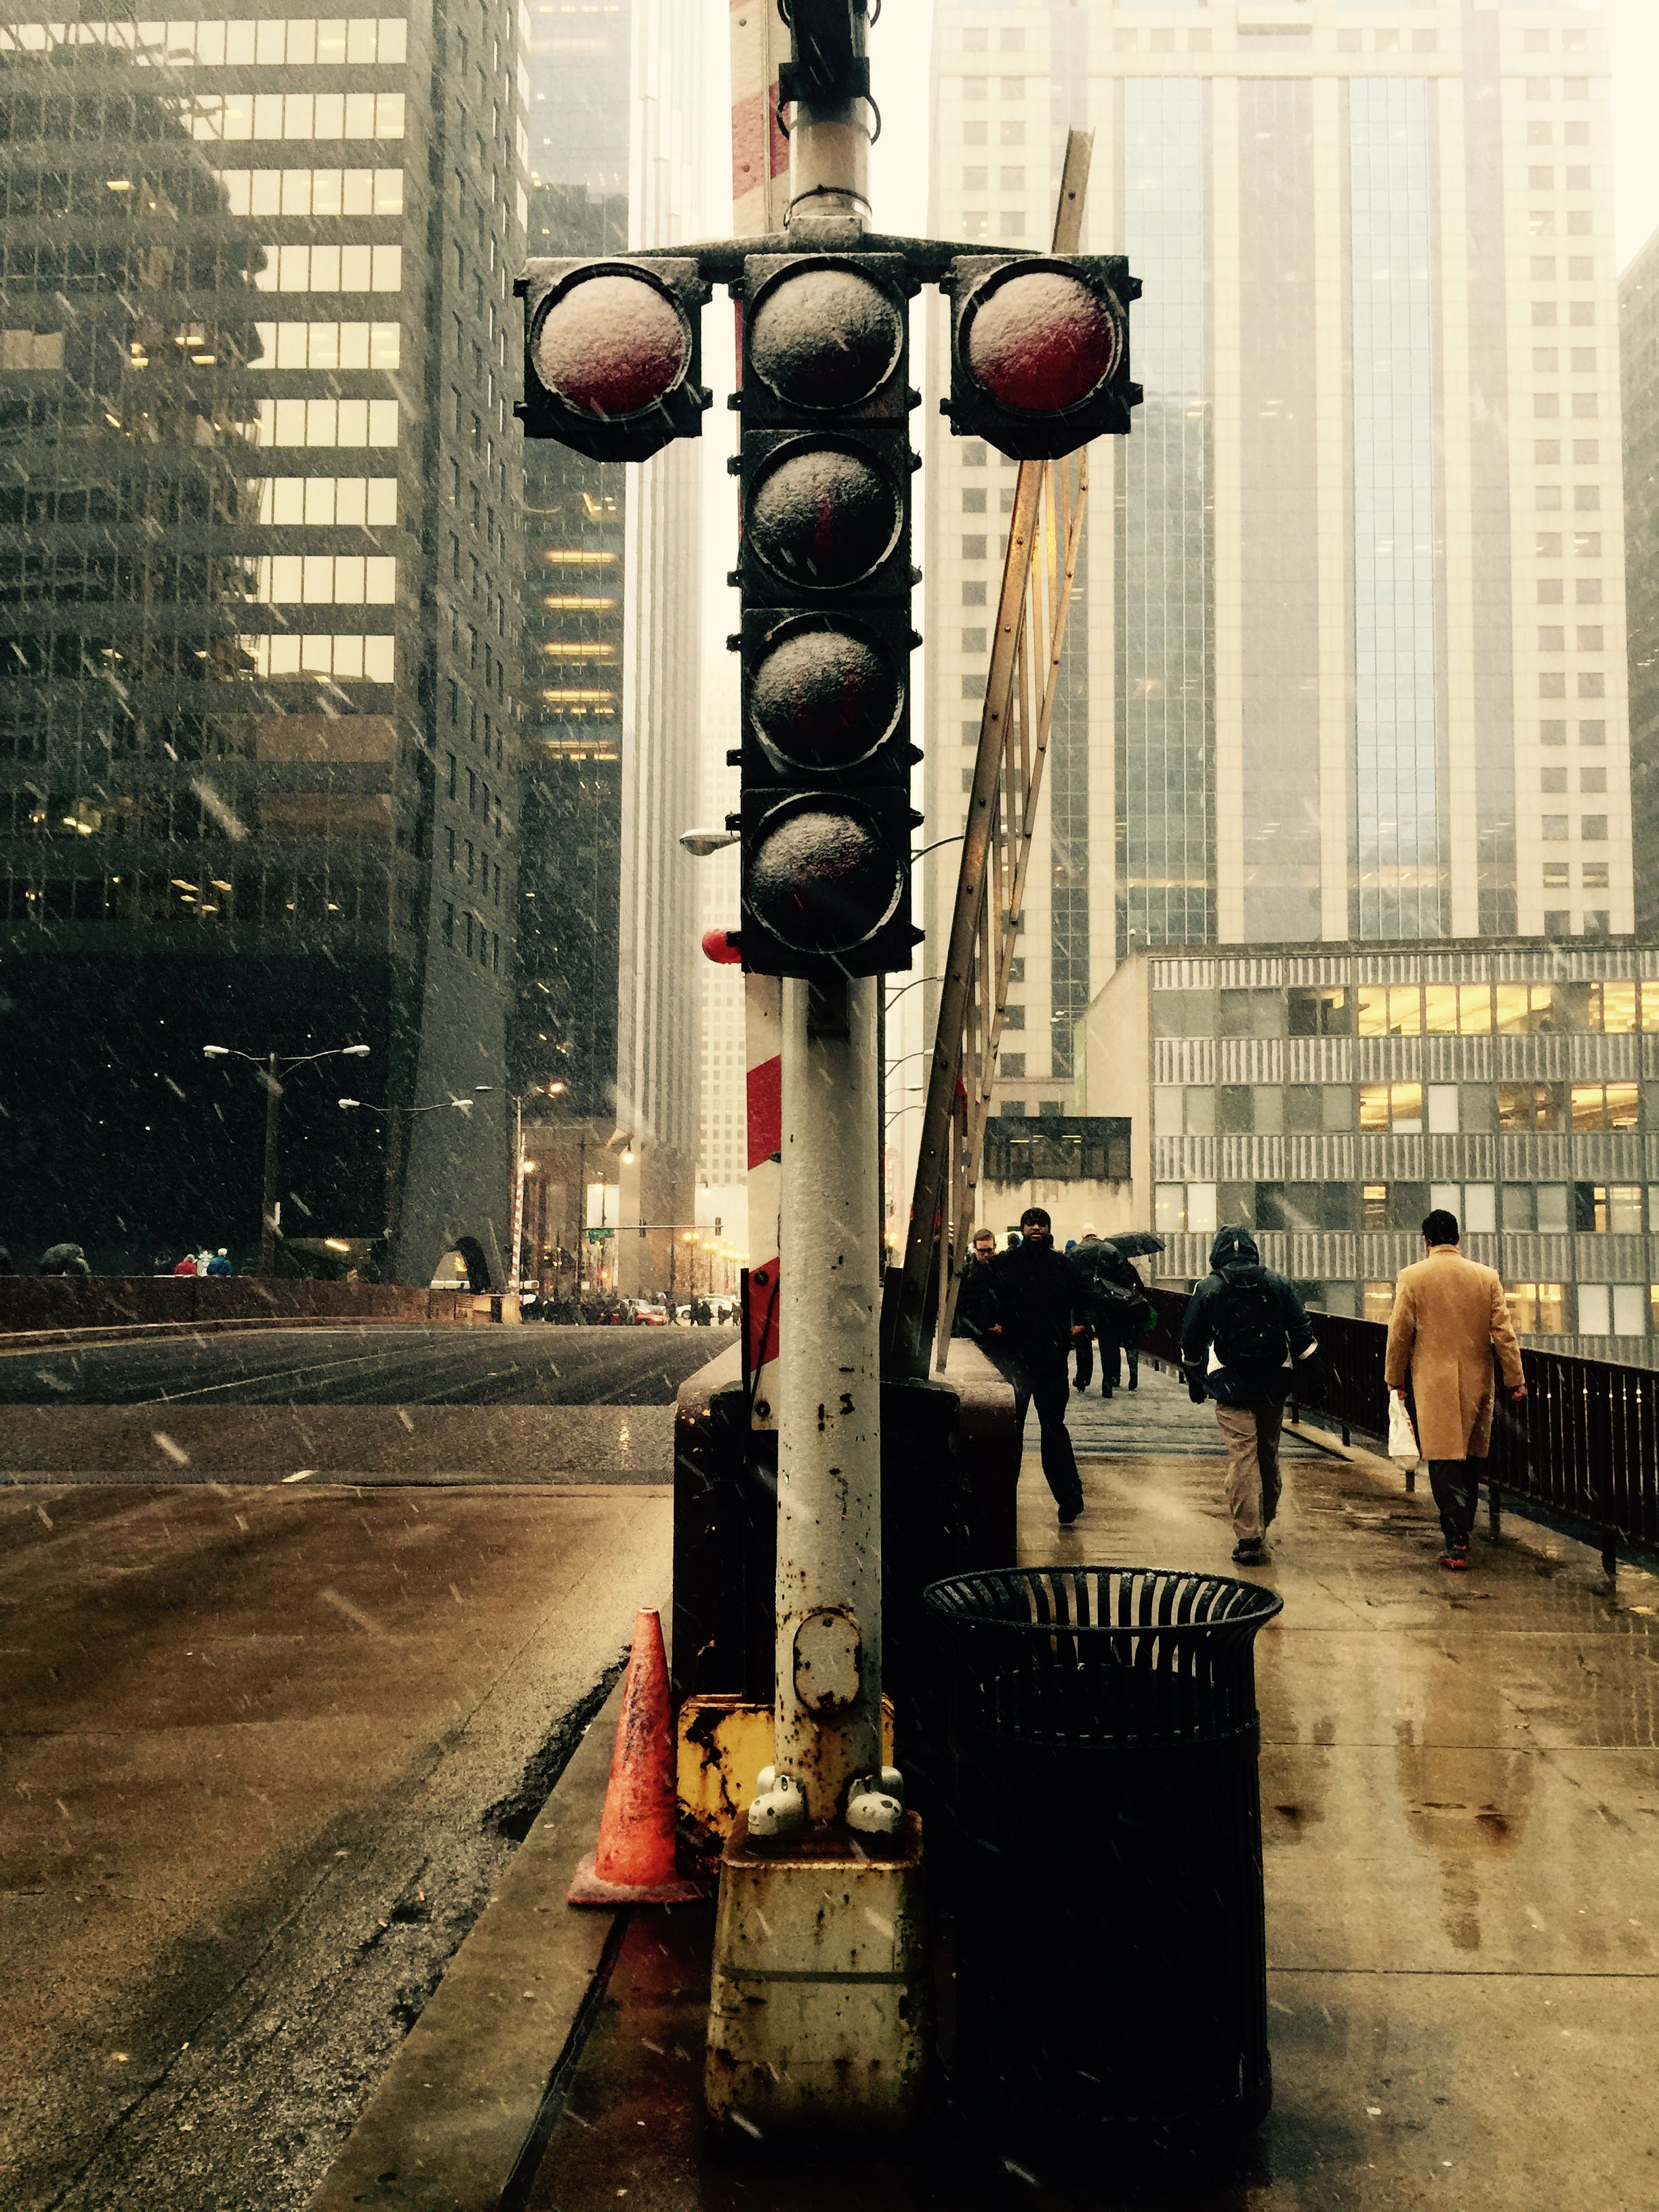 Traffic Light on Road High-saturated Photography